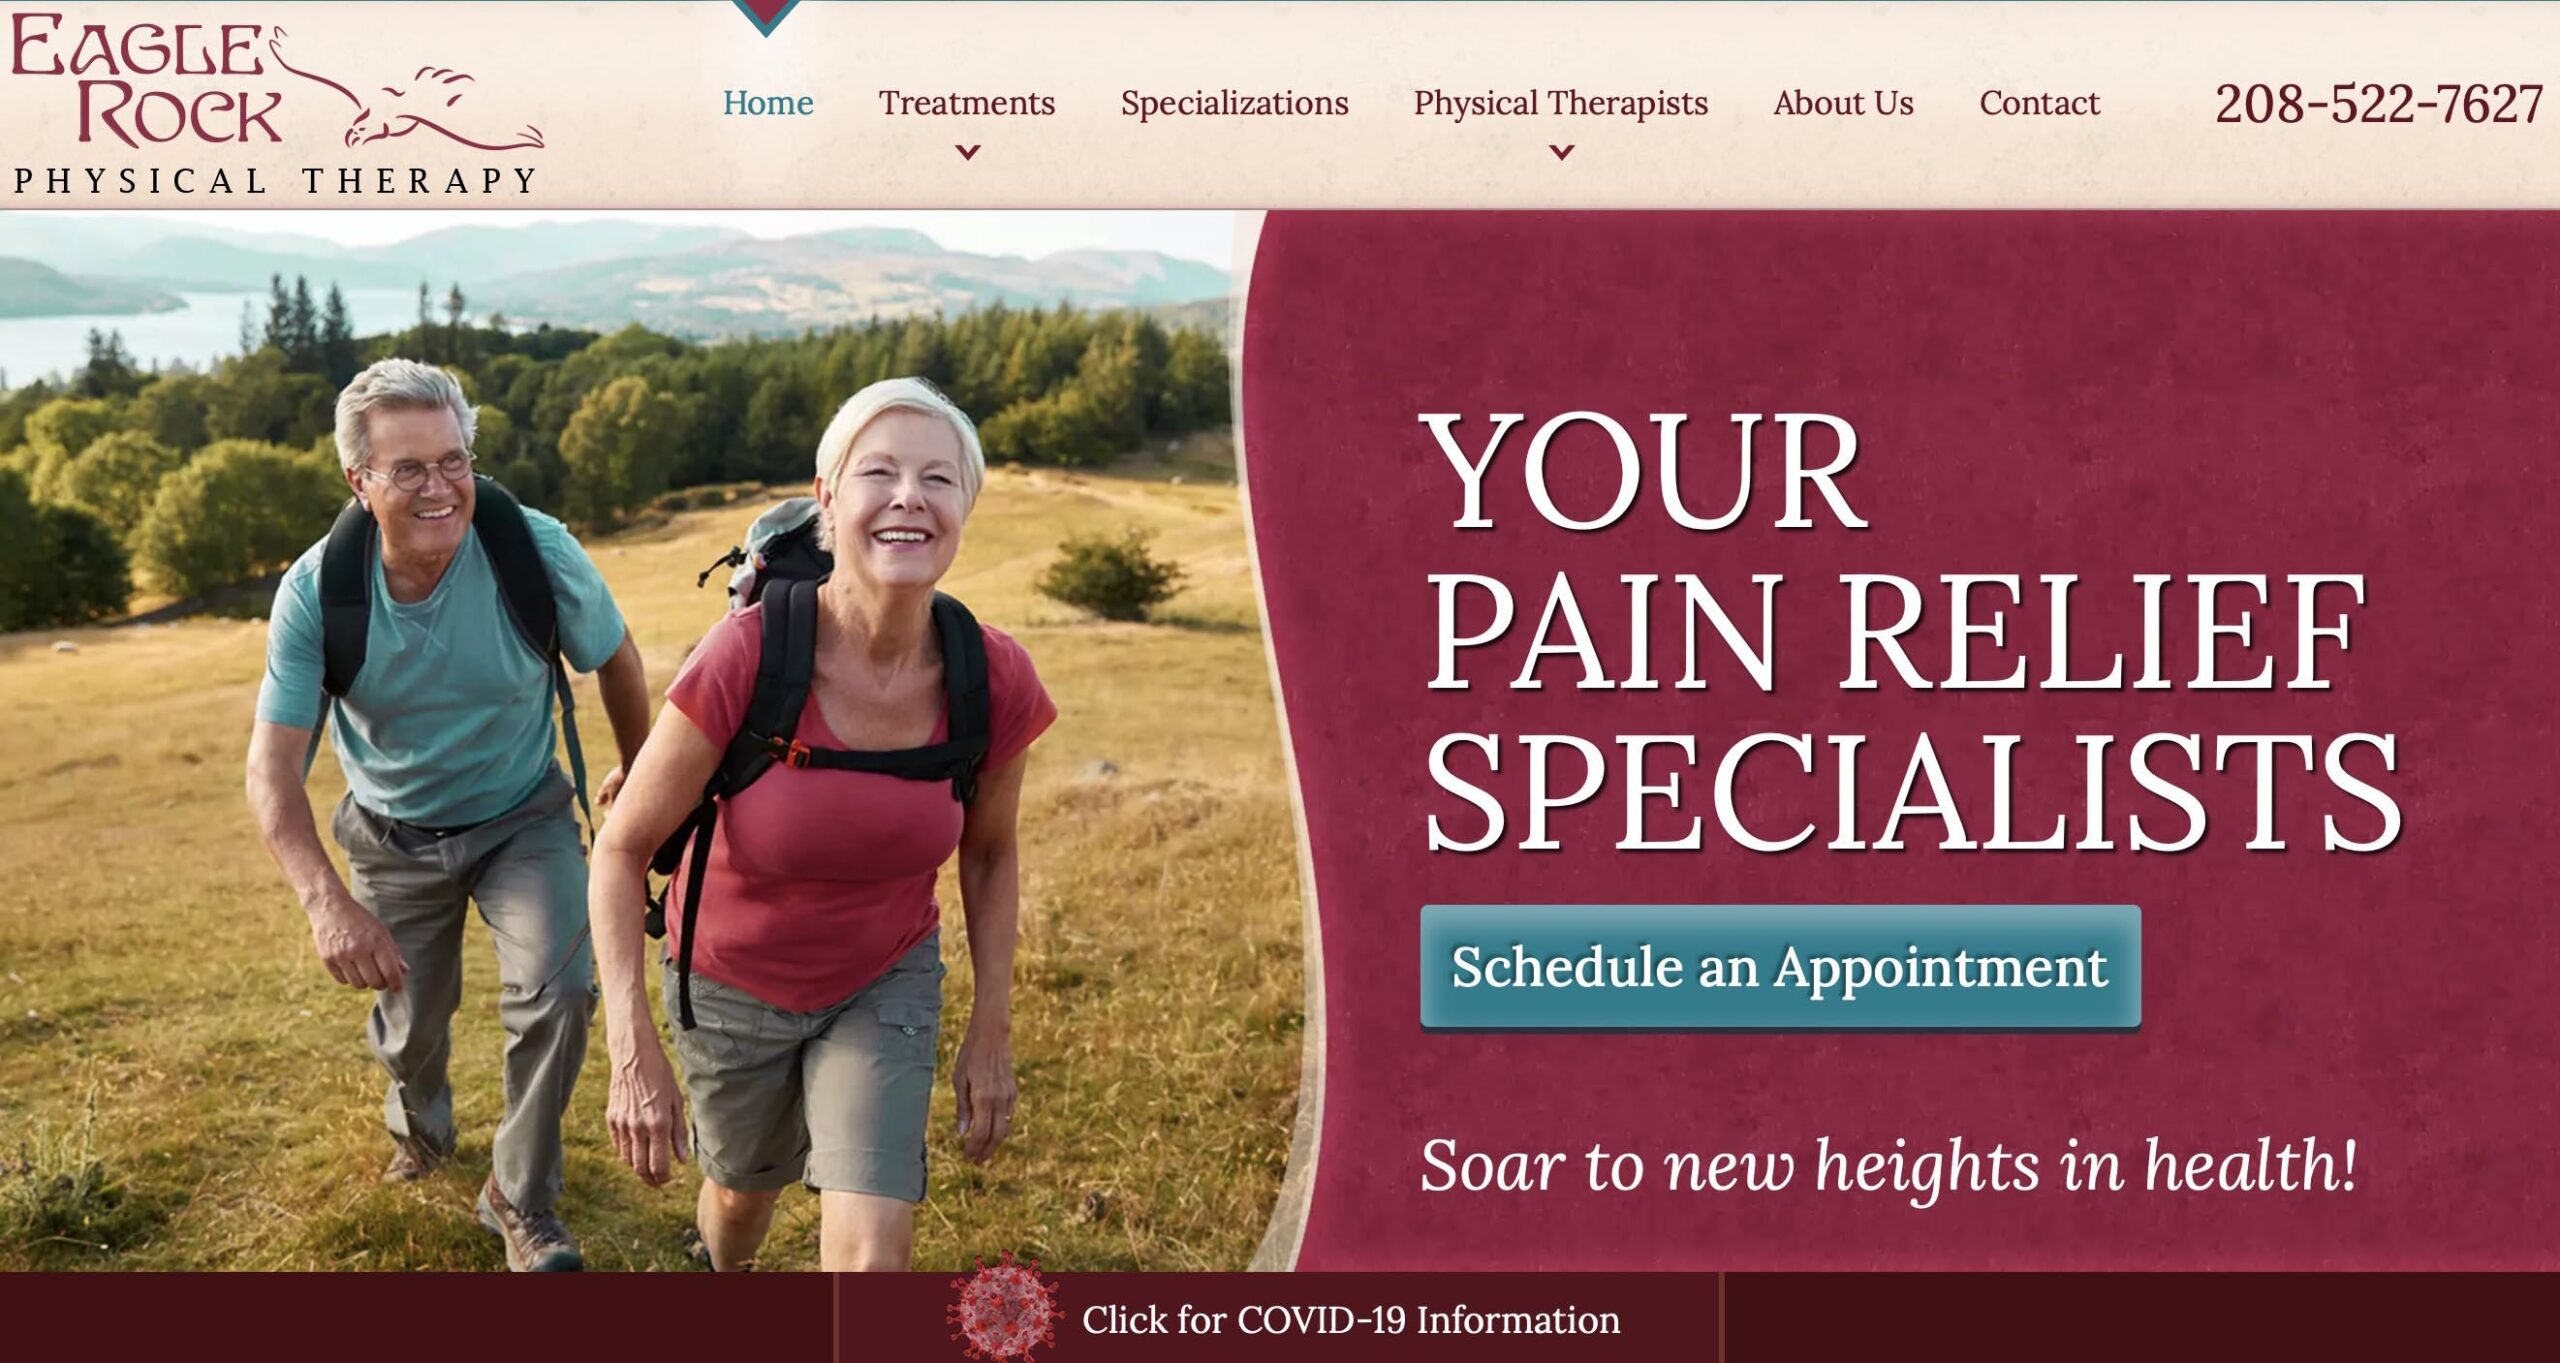 Marketing consultant - website developer project for Eagle Rock Physical Therapy